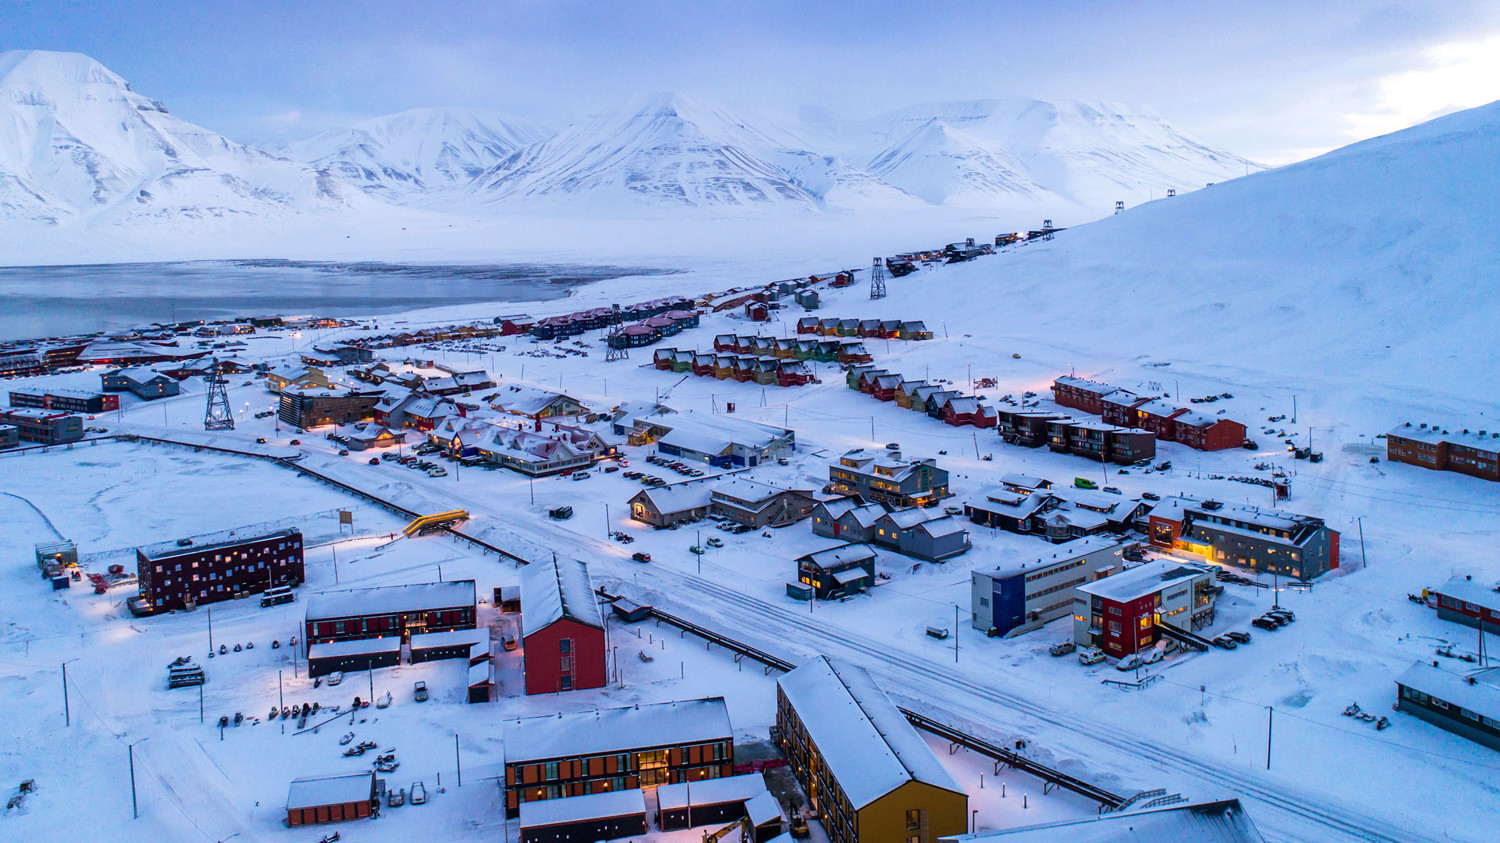 the town of svalbard below snow-capped mountains